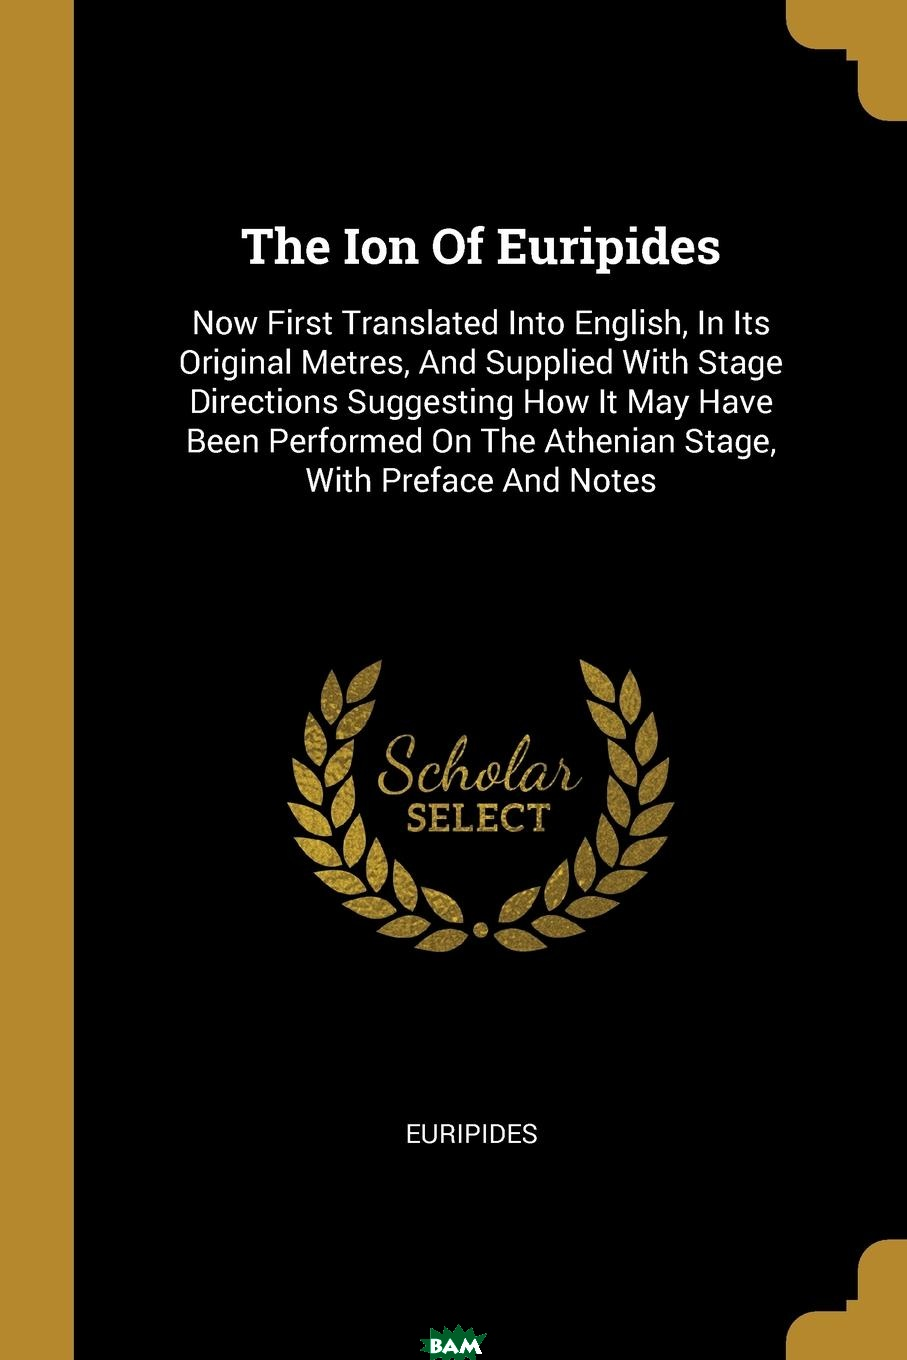 Купить The Ion Of Euripides. Now First Translated Into English, In Its Original Metres, And Supplied With Stage Directions Suggesting How It May Have Been Performed On The Athenian Stage, With Preface And No, 9781011213900